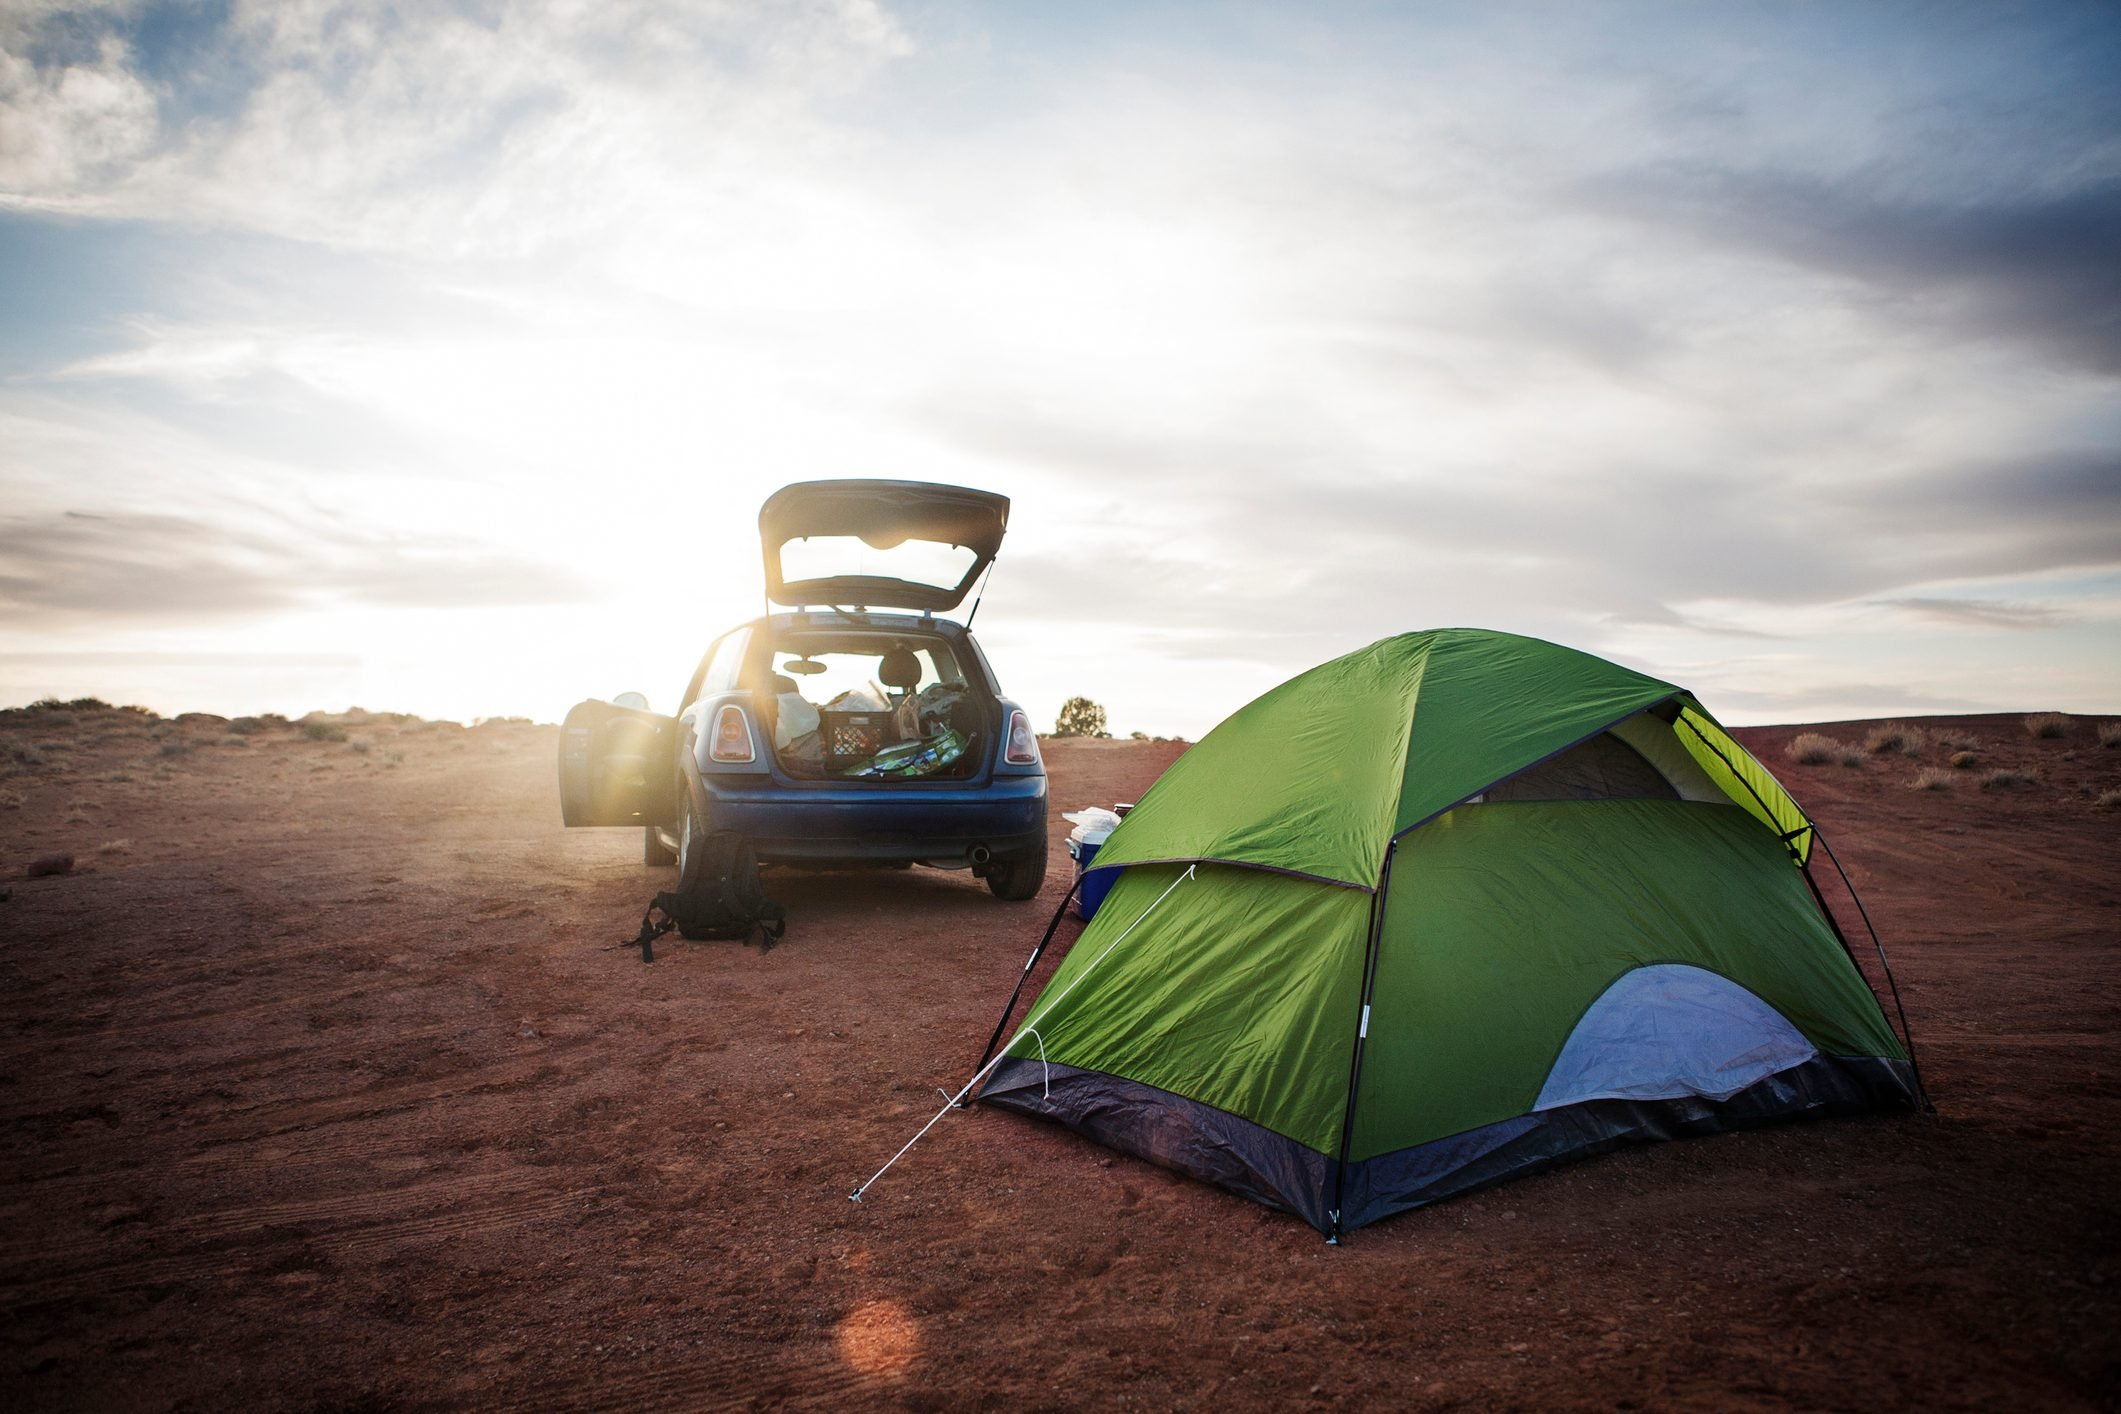 Tent and car on field against cloudy sky